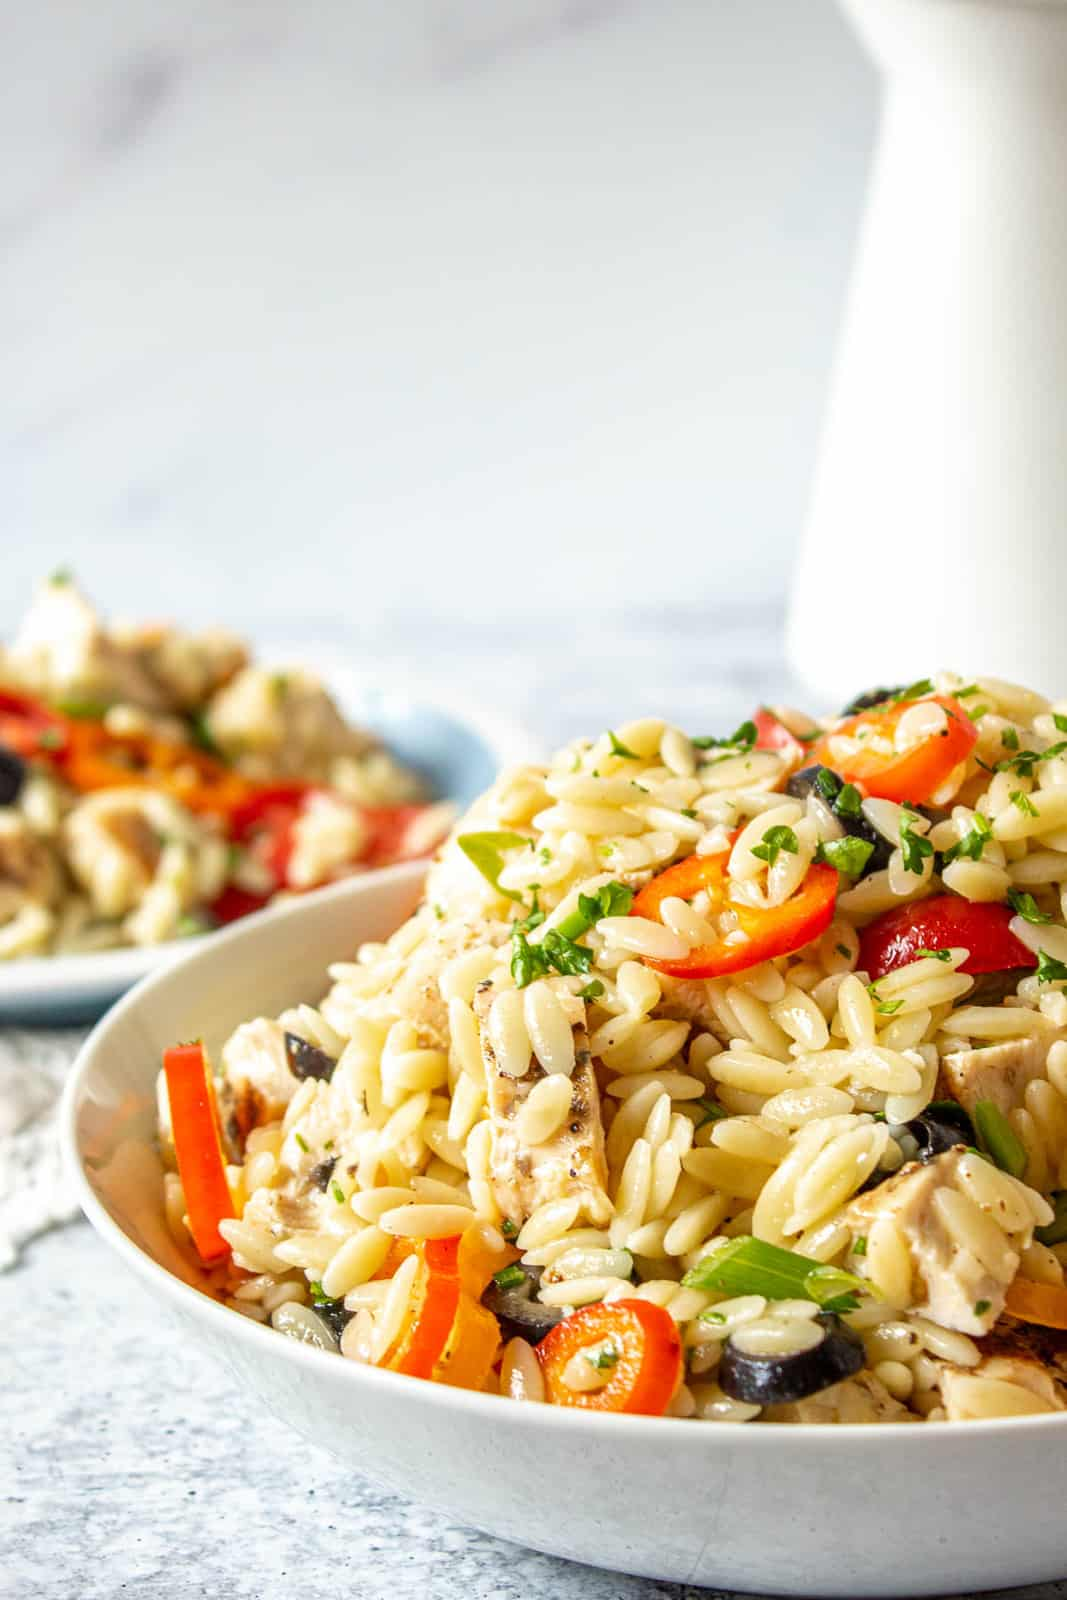 Orzo chicken salad in a large white bowl.